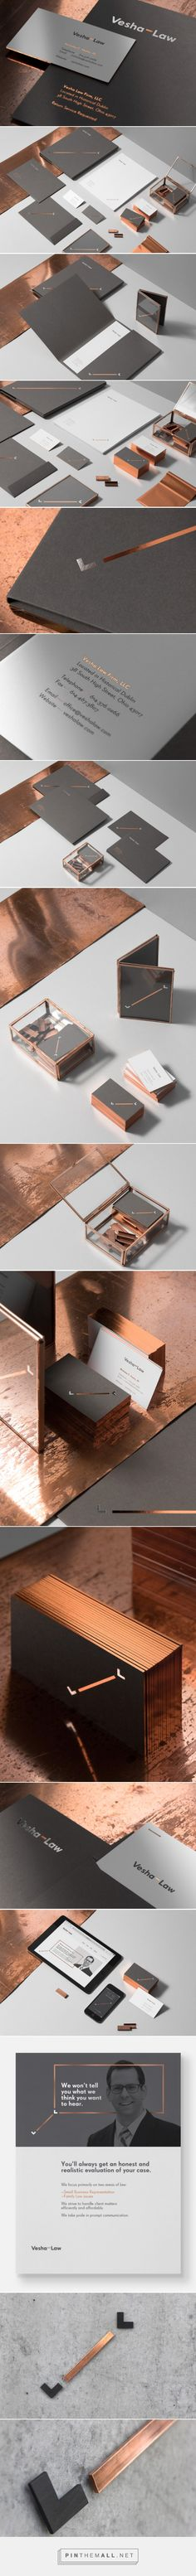 Identity Design Inspiration: Vesha Law by For Brands